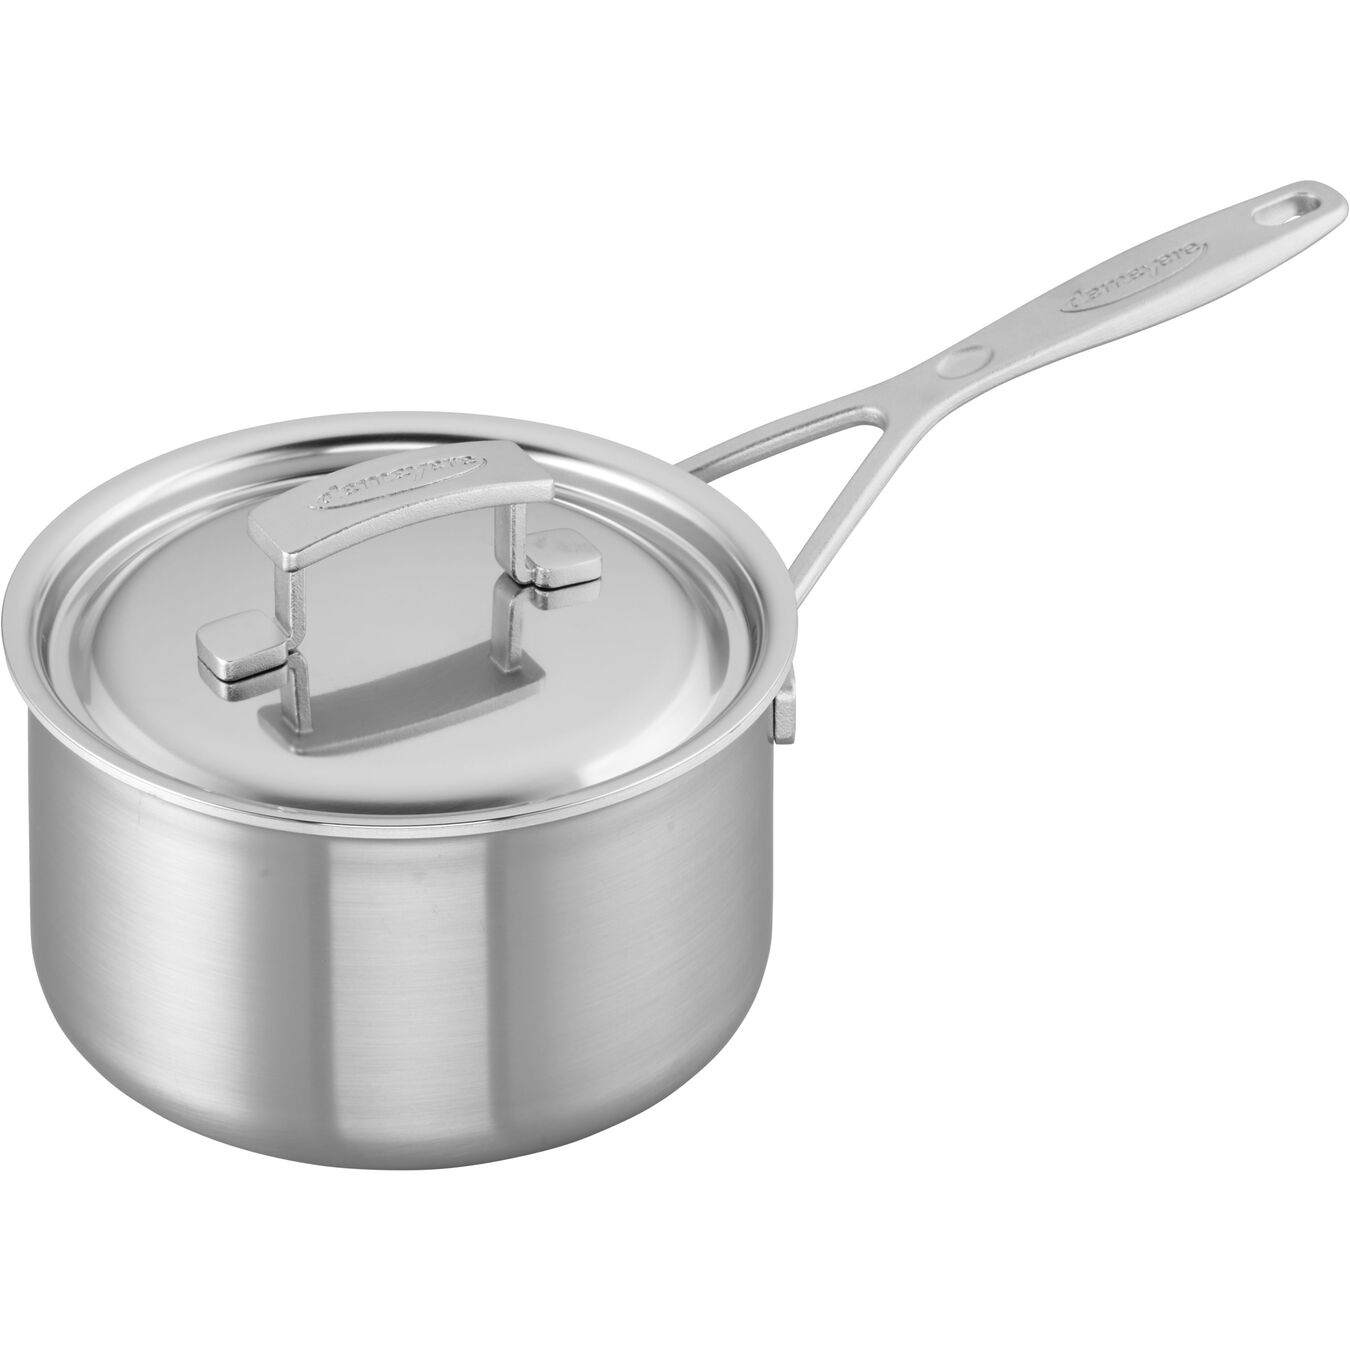 2-qt Stainless Steel Saucepan,,large 1